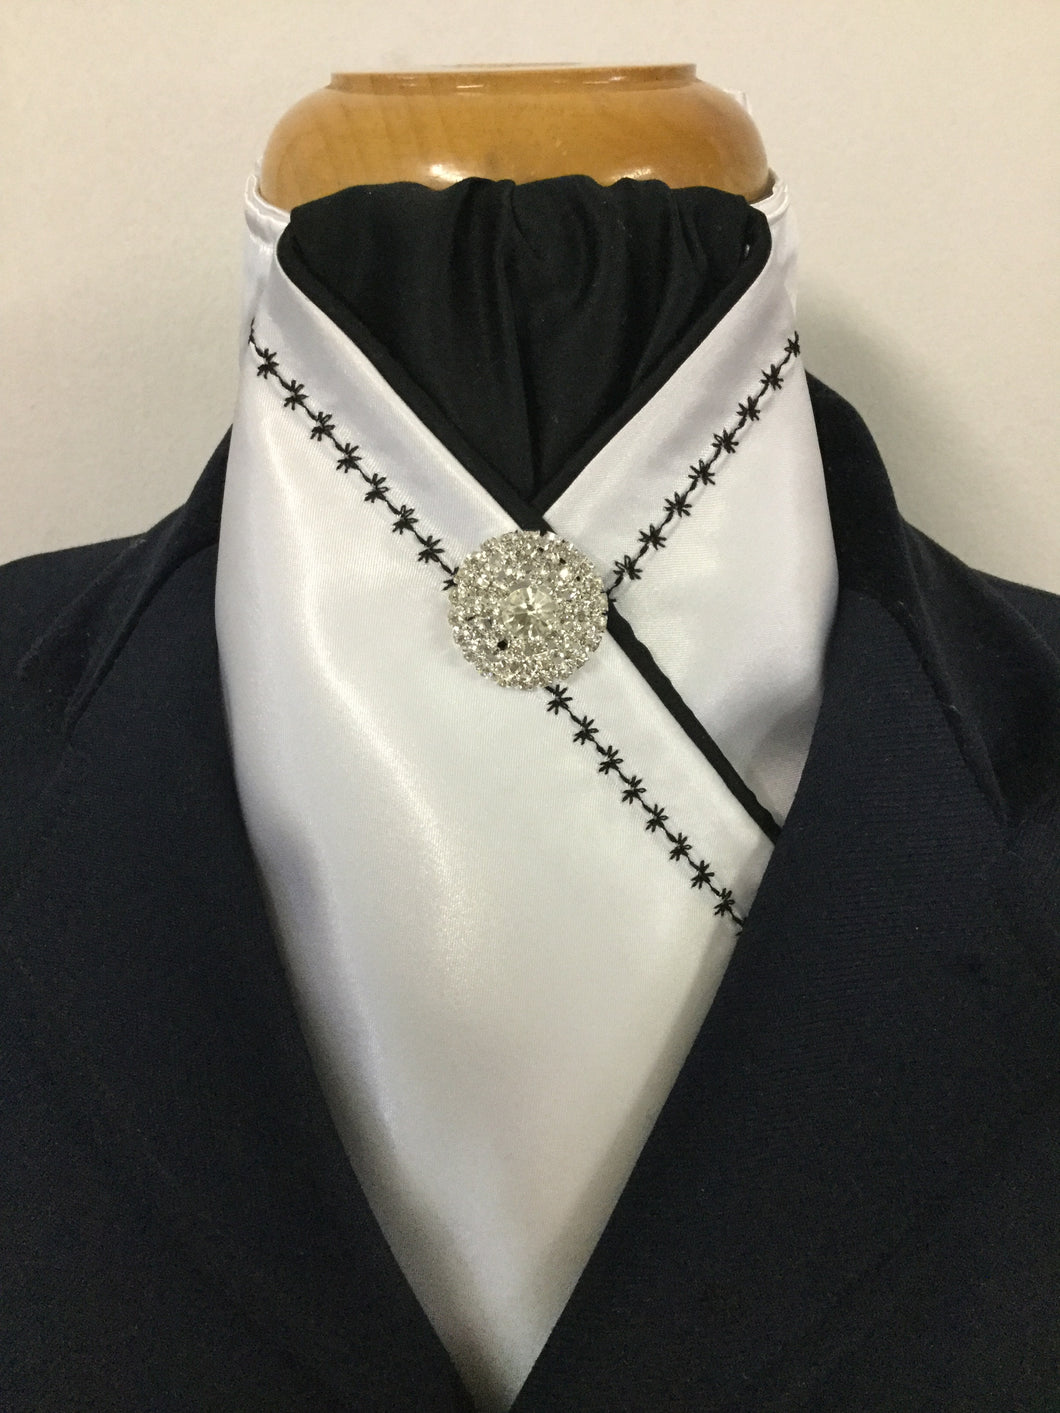 HHD White Satin Pretied Stock Tie Embroidered in Black